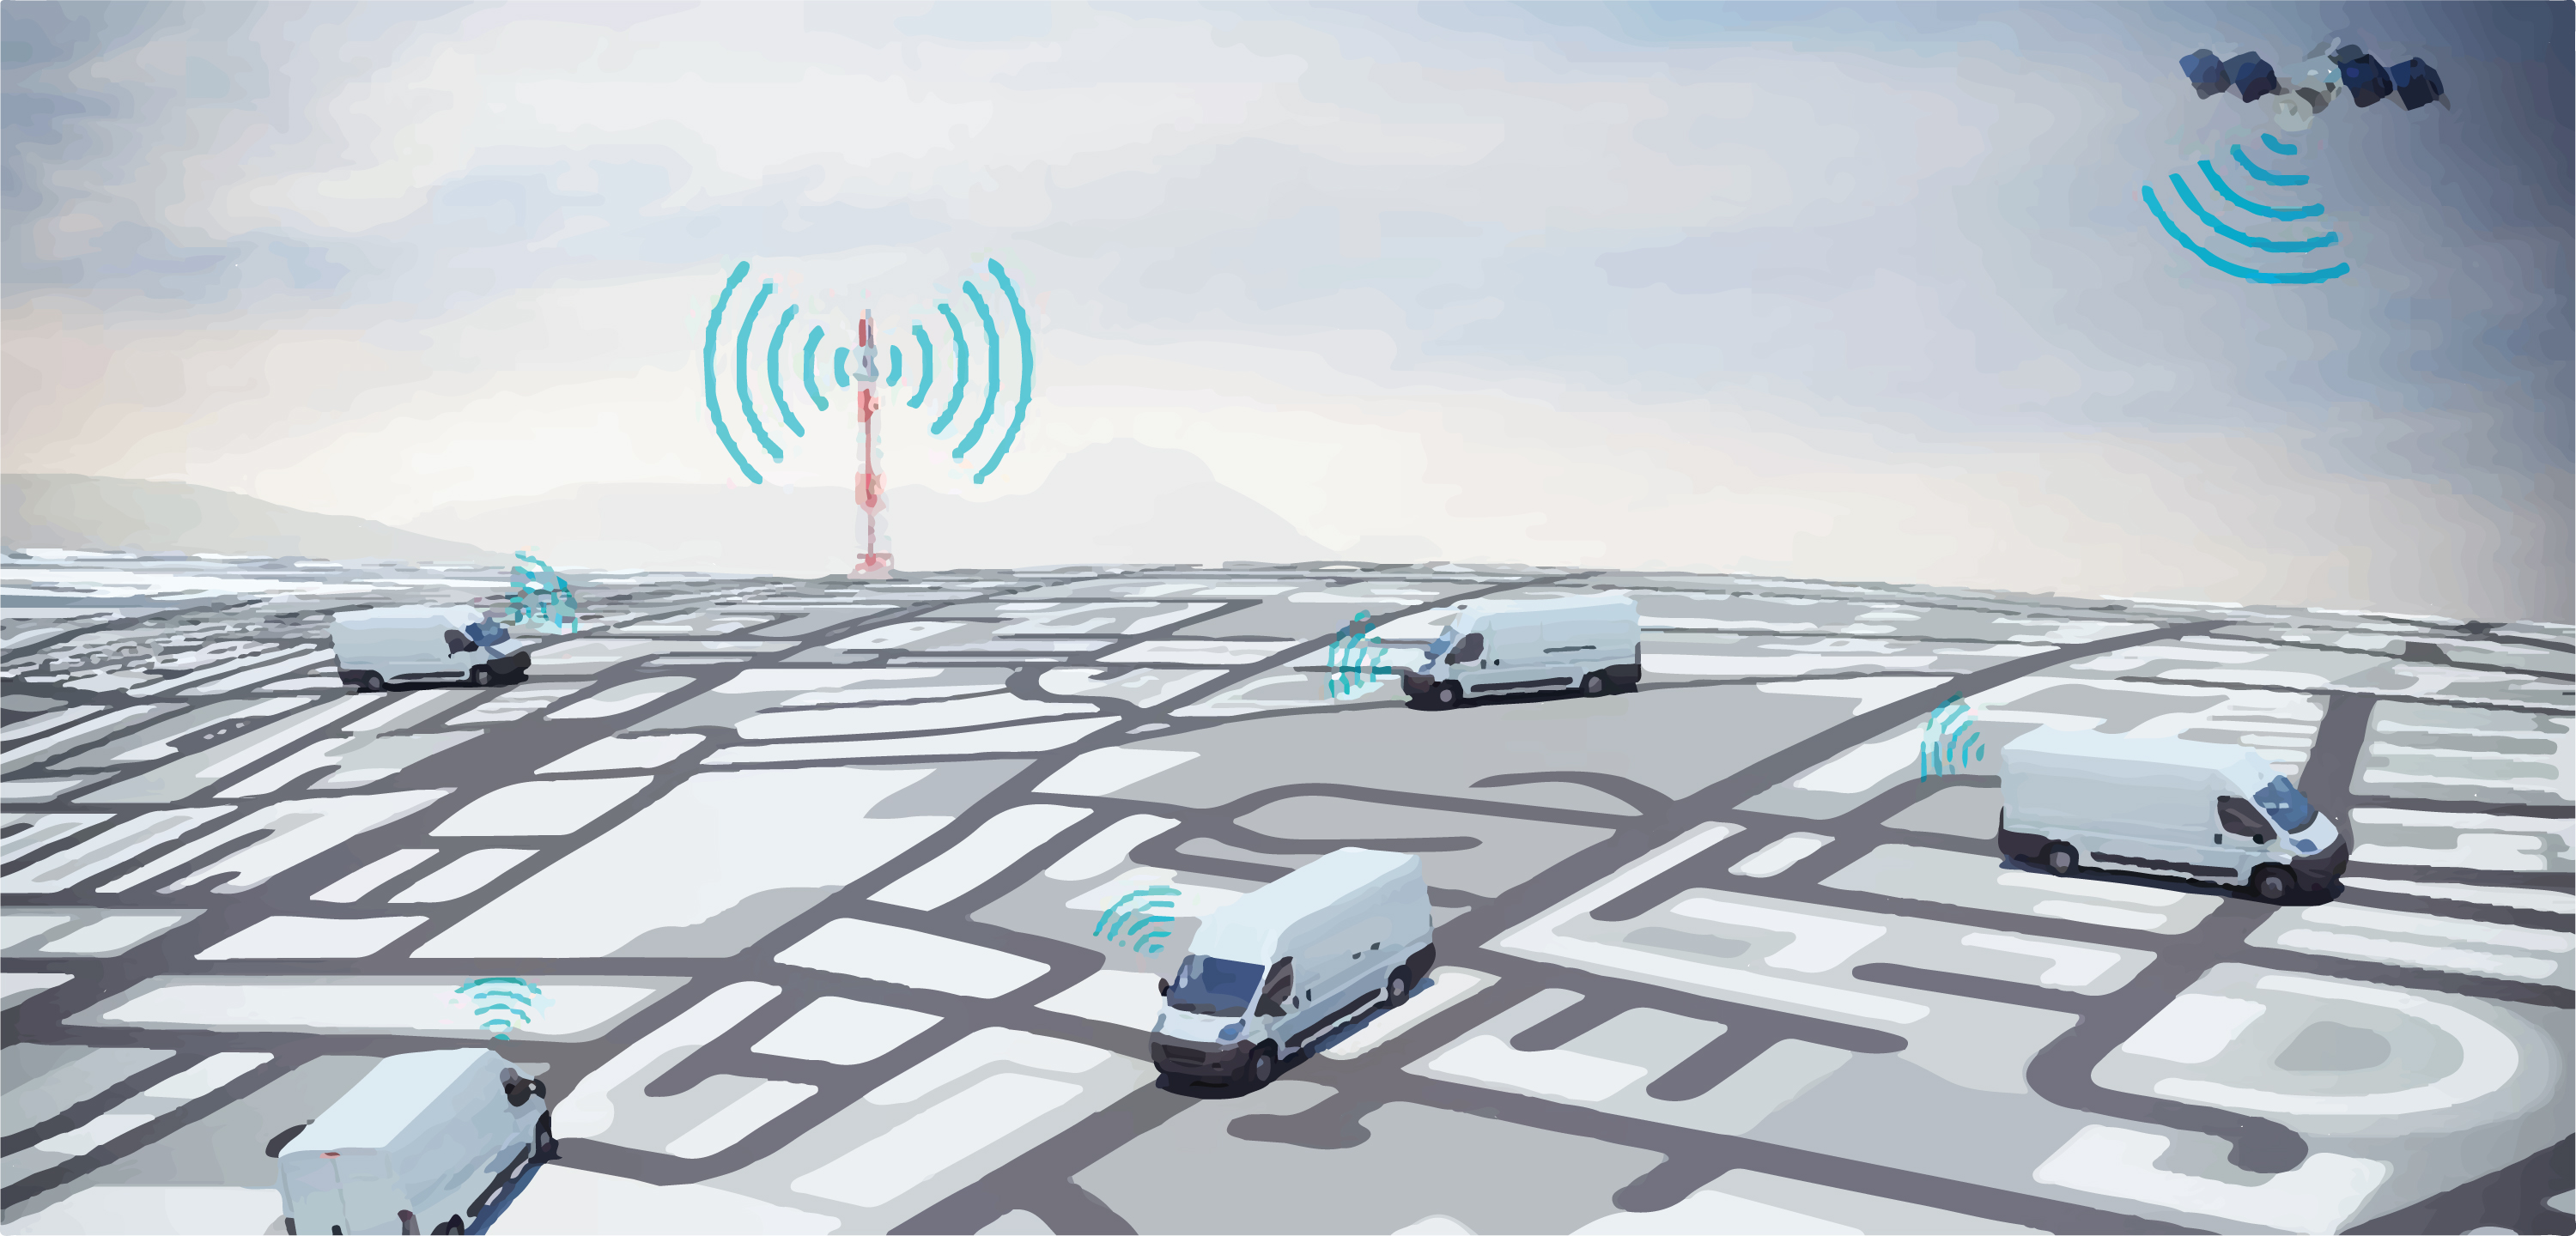 gps monitoring allows you to track transports on the map